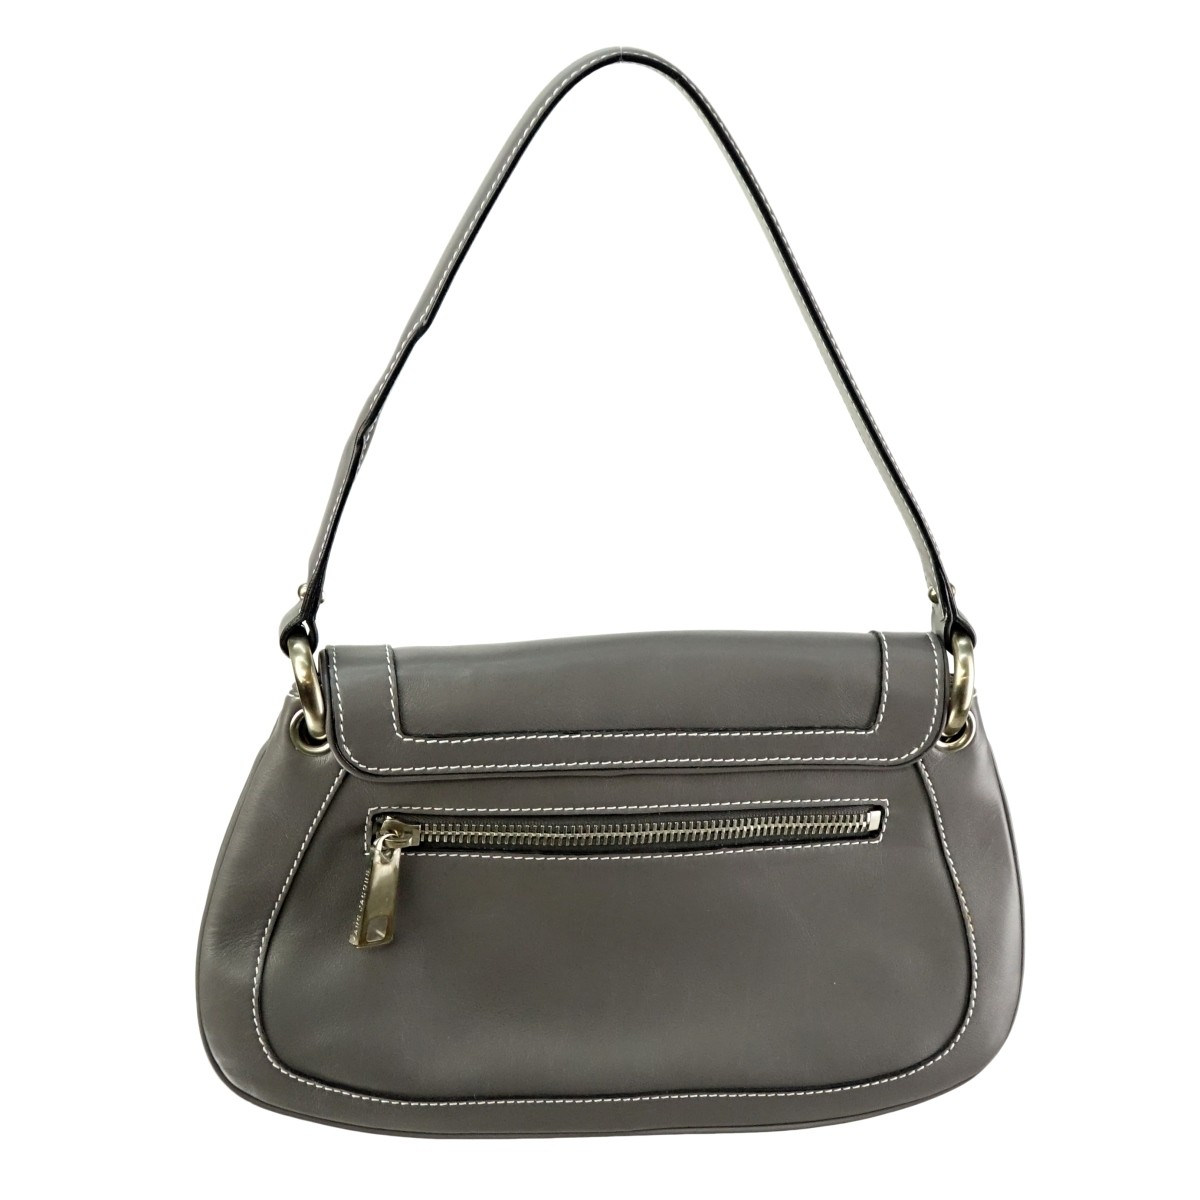 Marc Jacobs Gray Top Stitch Leather Flap Bag